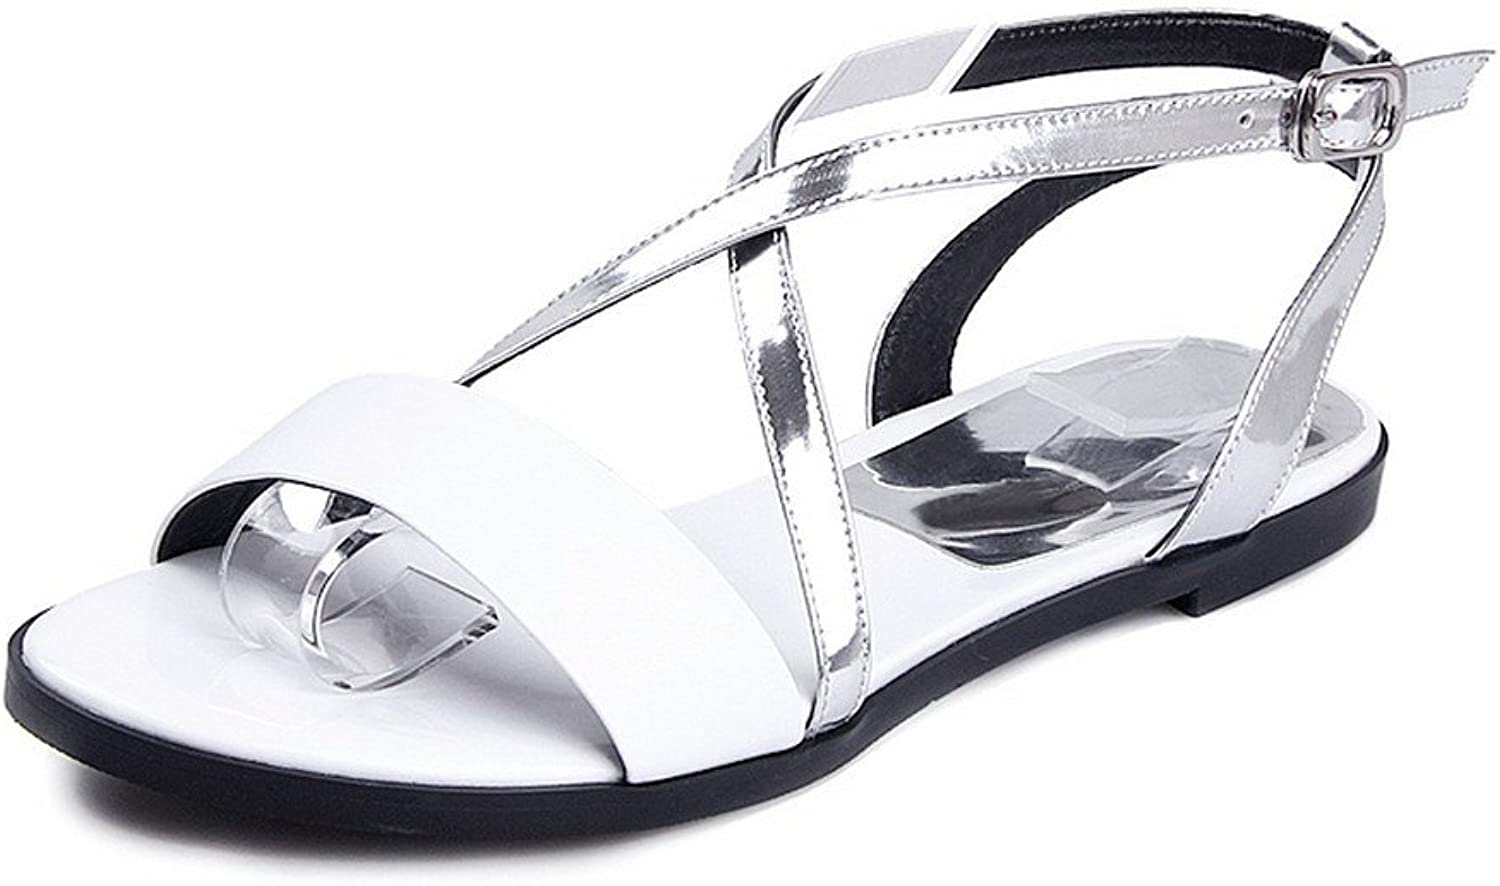 AmoonyFashion Women's Cow Leather Assorted color Buckle Open Toe No-Heel Sandals